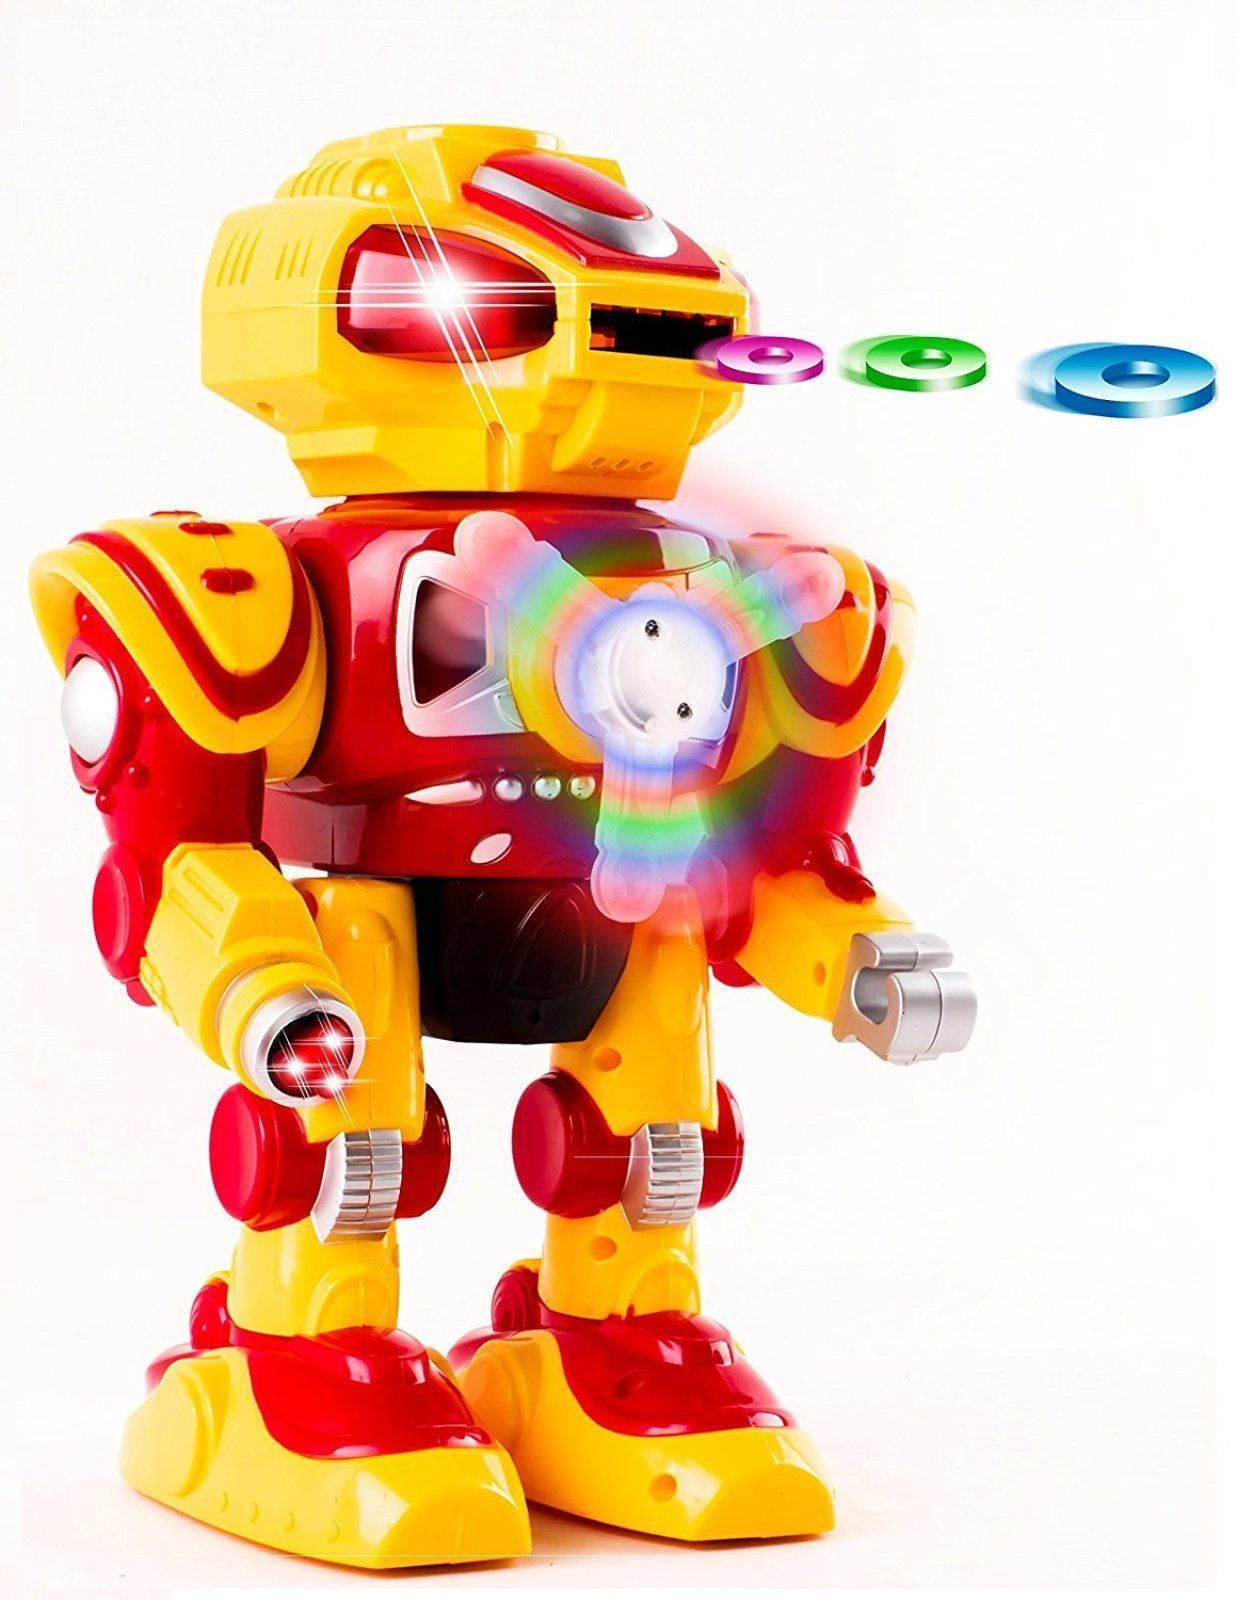 Boys Cool Toy For Boys Robot Toys Kids Toddler Robot 3 4 5 6 7 8 9 Year Old Age